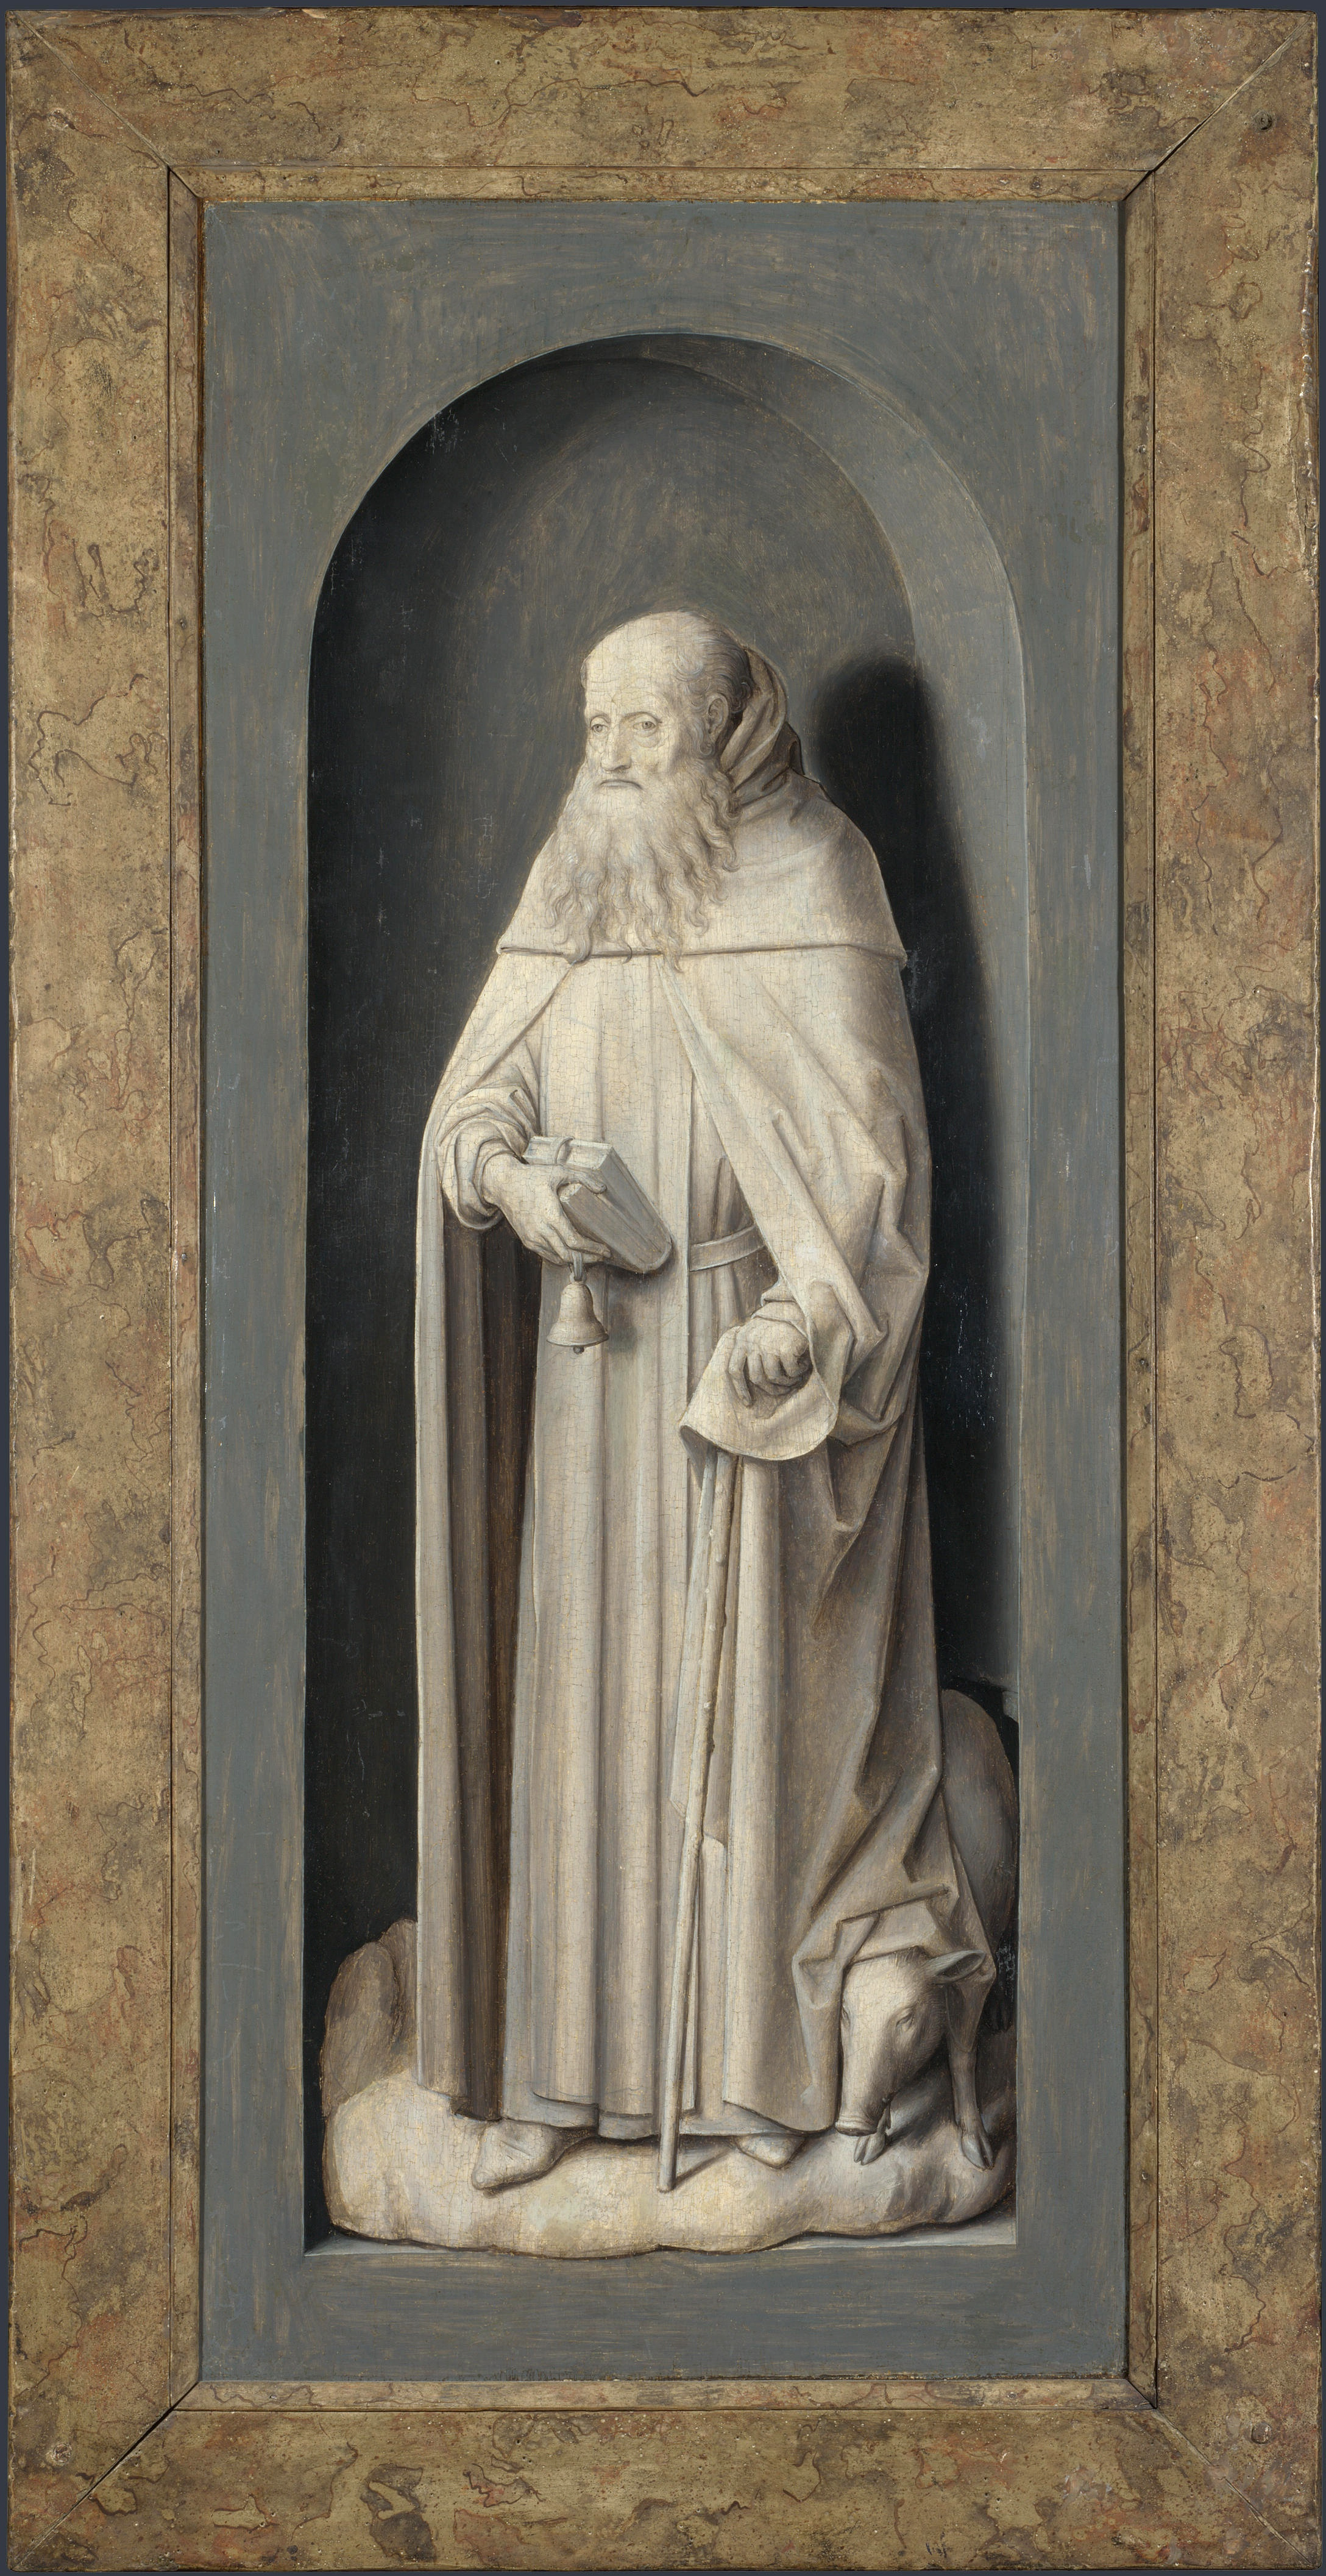 Hans Memling. Saint Anthony. Triptych Donna. The outer side of the right wing